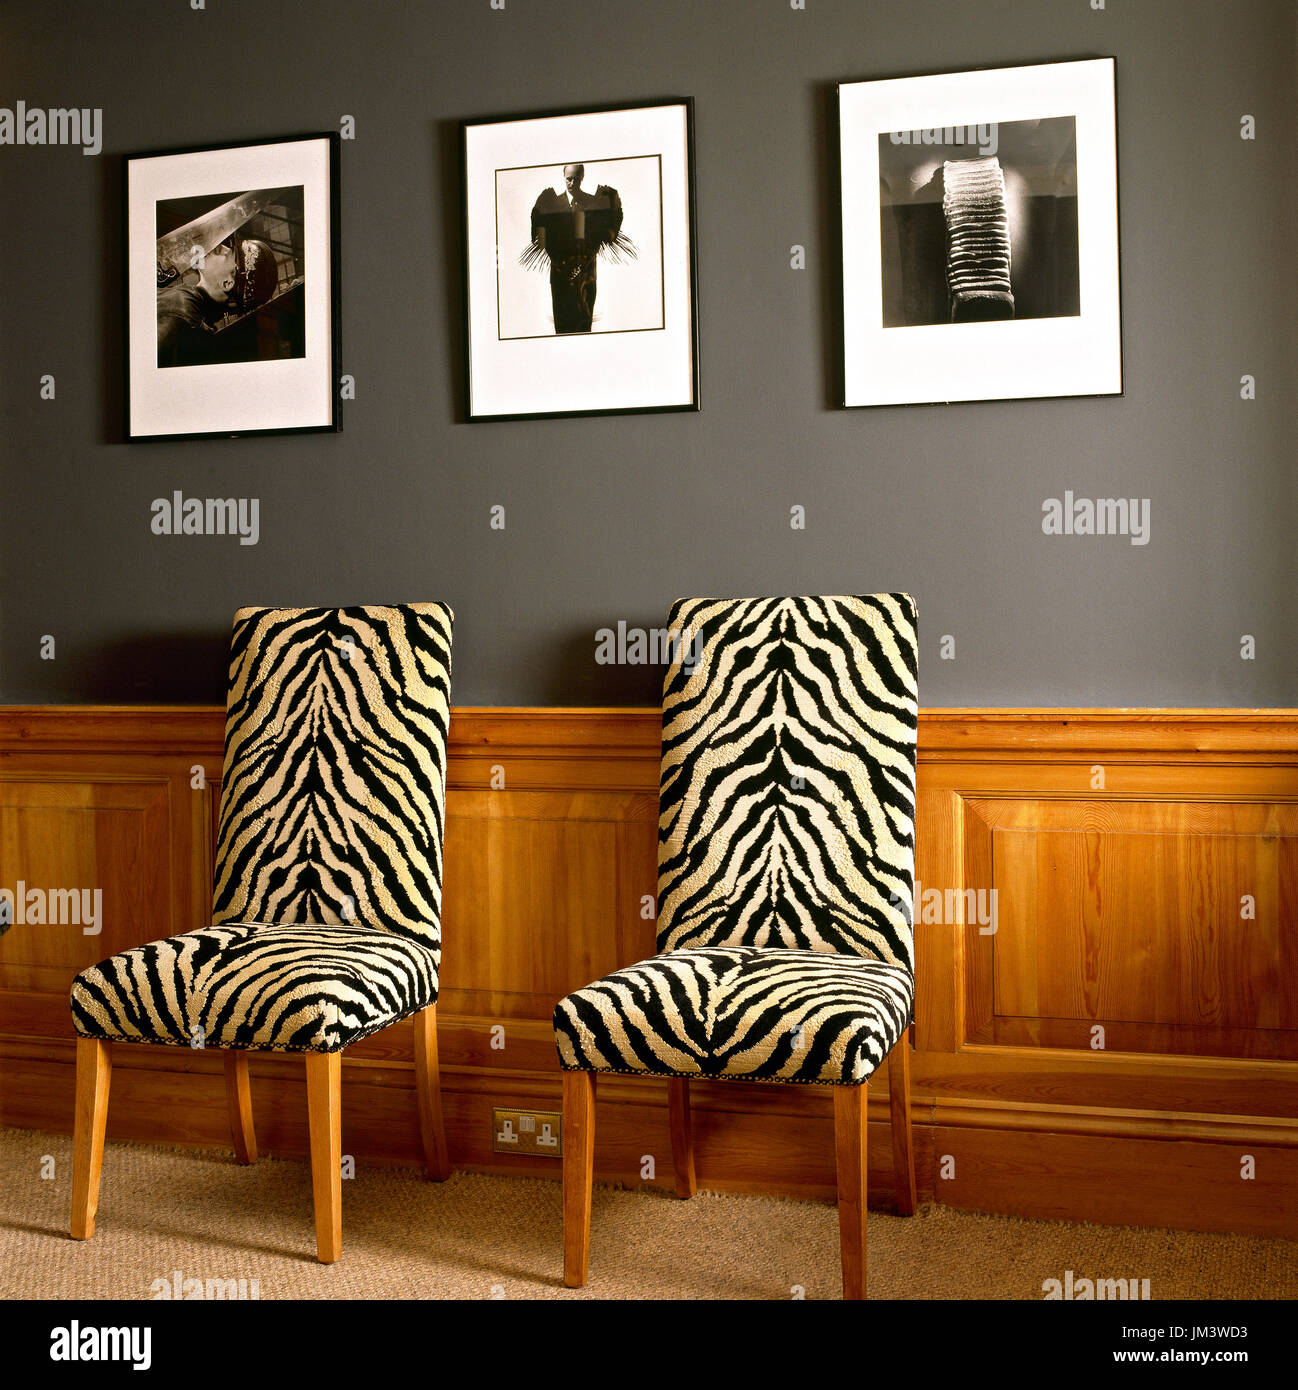 Zebra Print Chairs Below Hanging Photographs   Stock Image